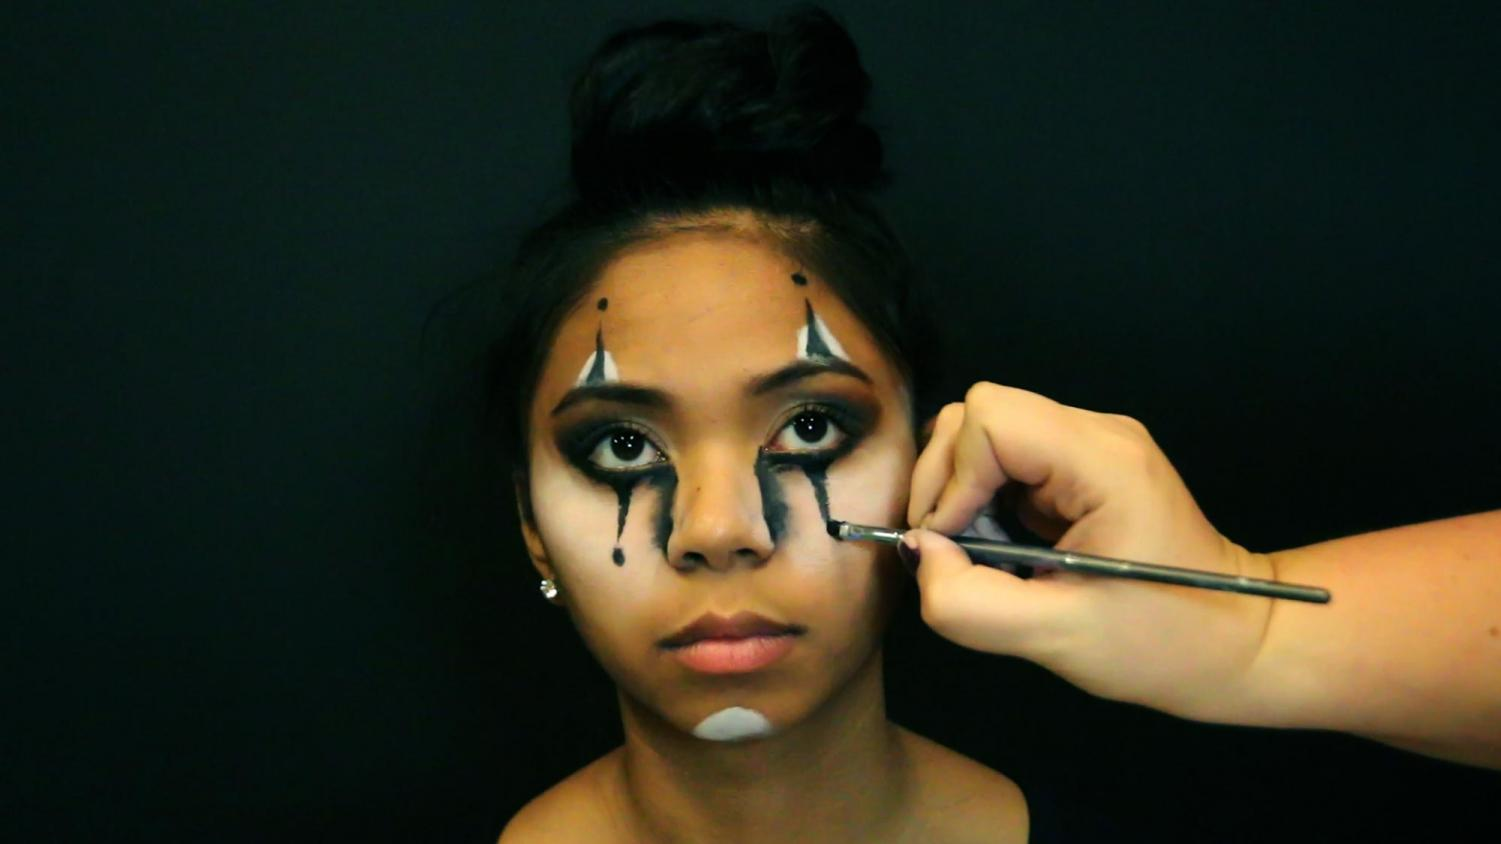 Halloween howls as Hannah Lizano brings these ghoulish looks to life